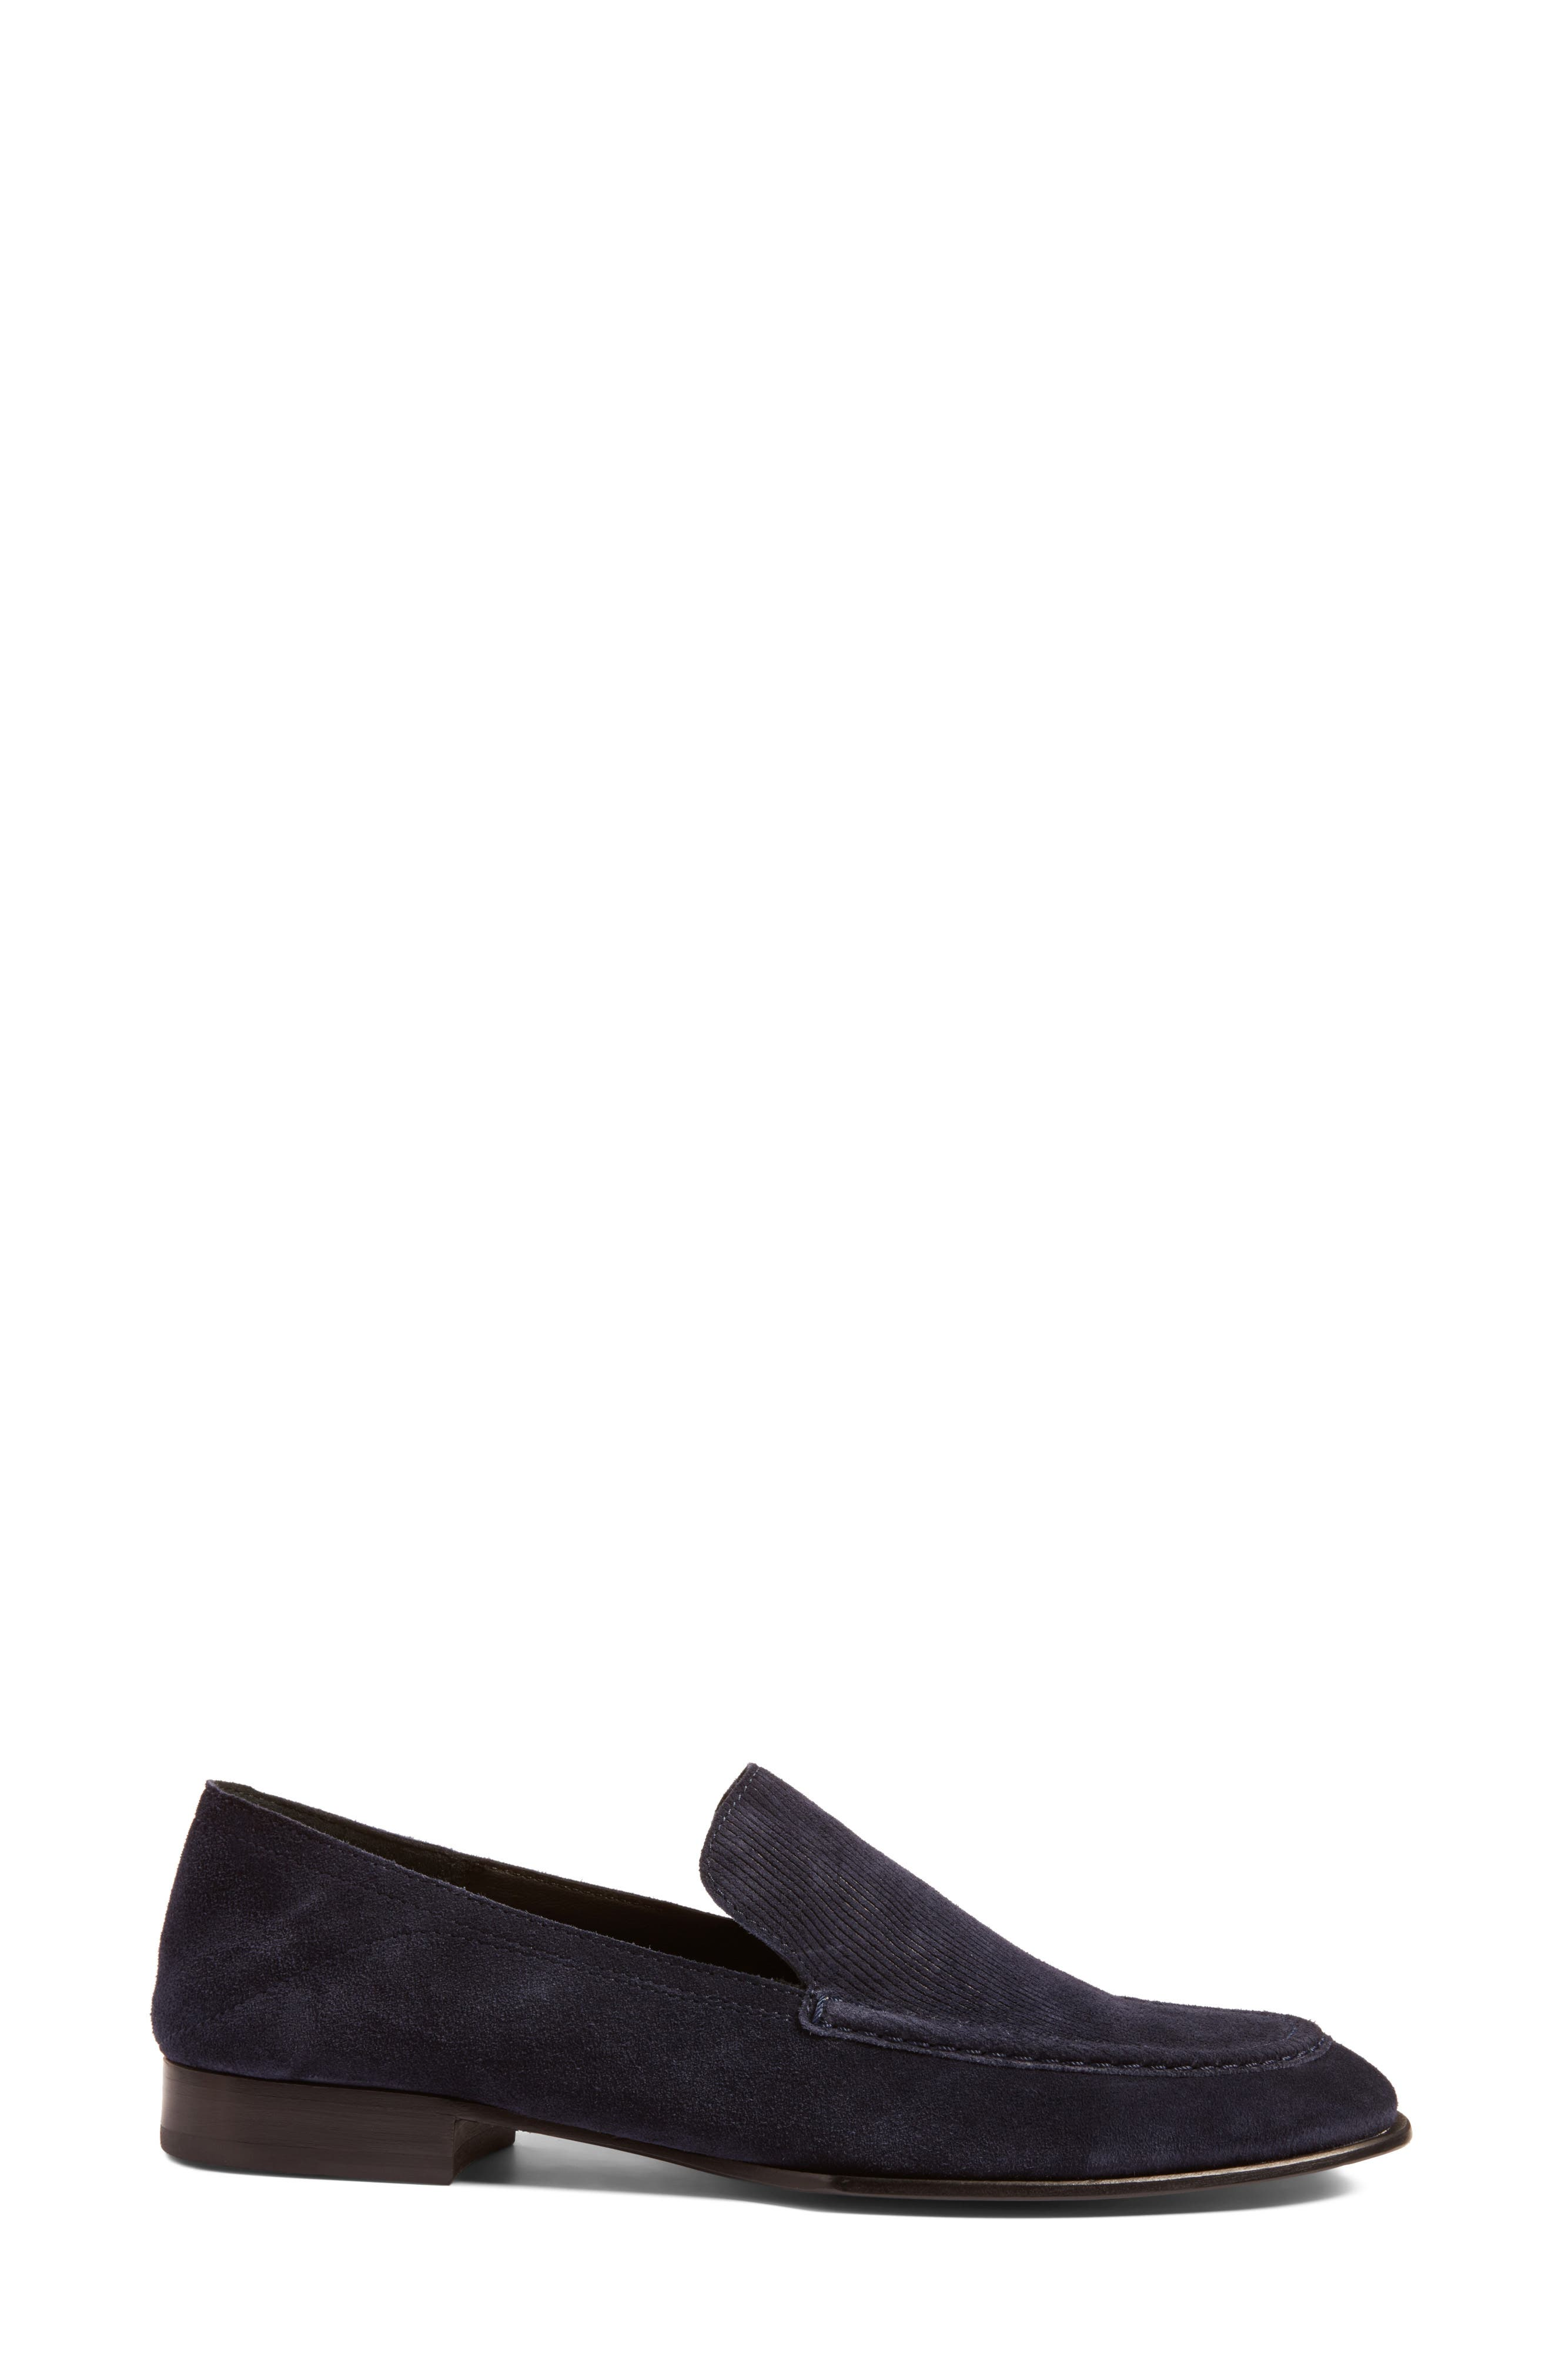 Alix Convertible Loafer,                             Alternate thumbnail 4, color,                             Navy Suede